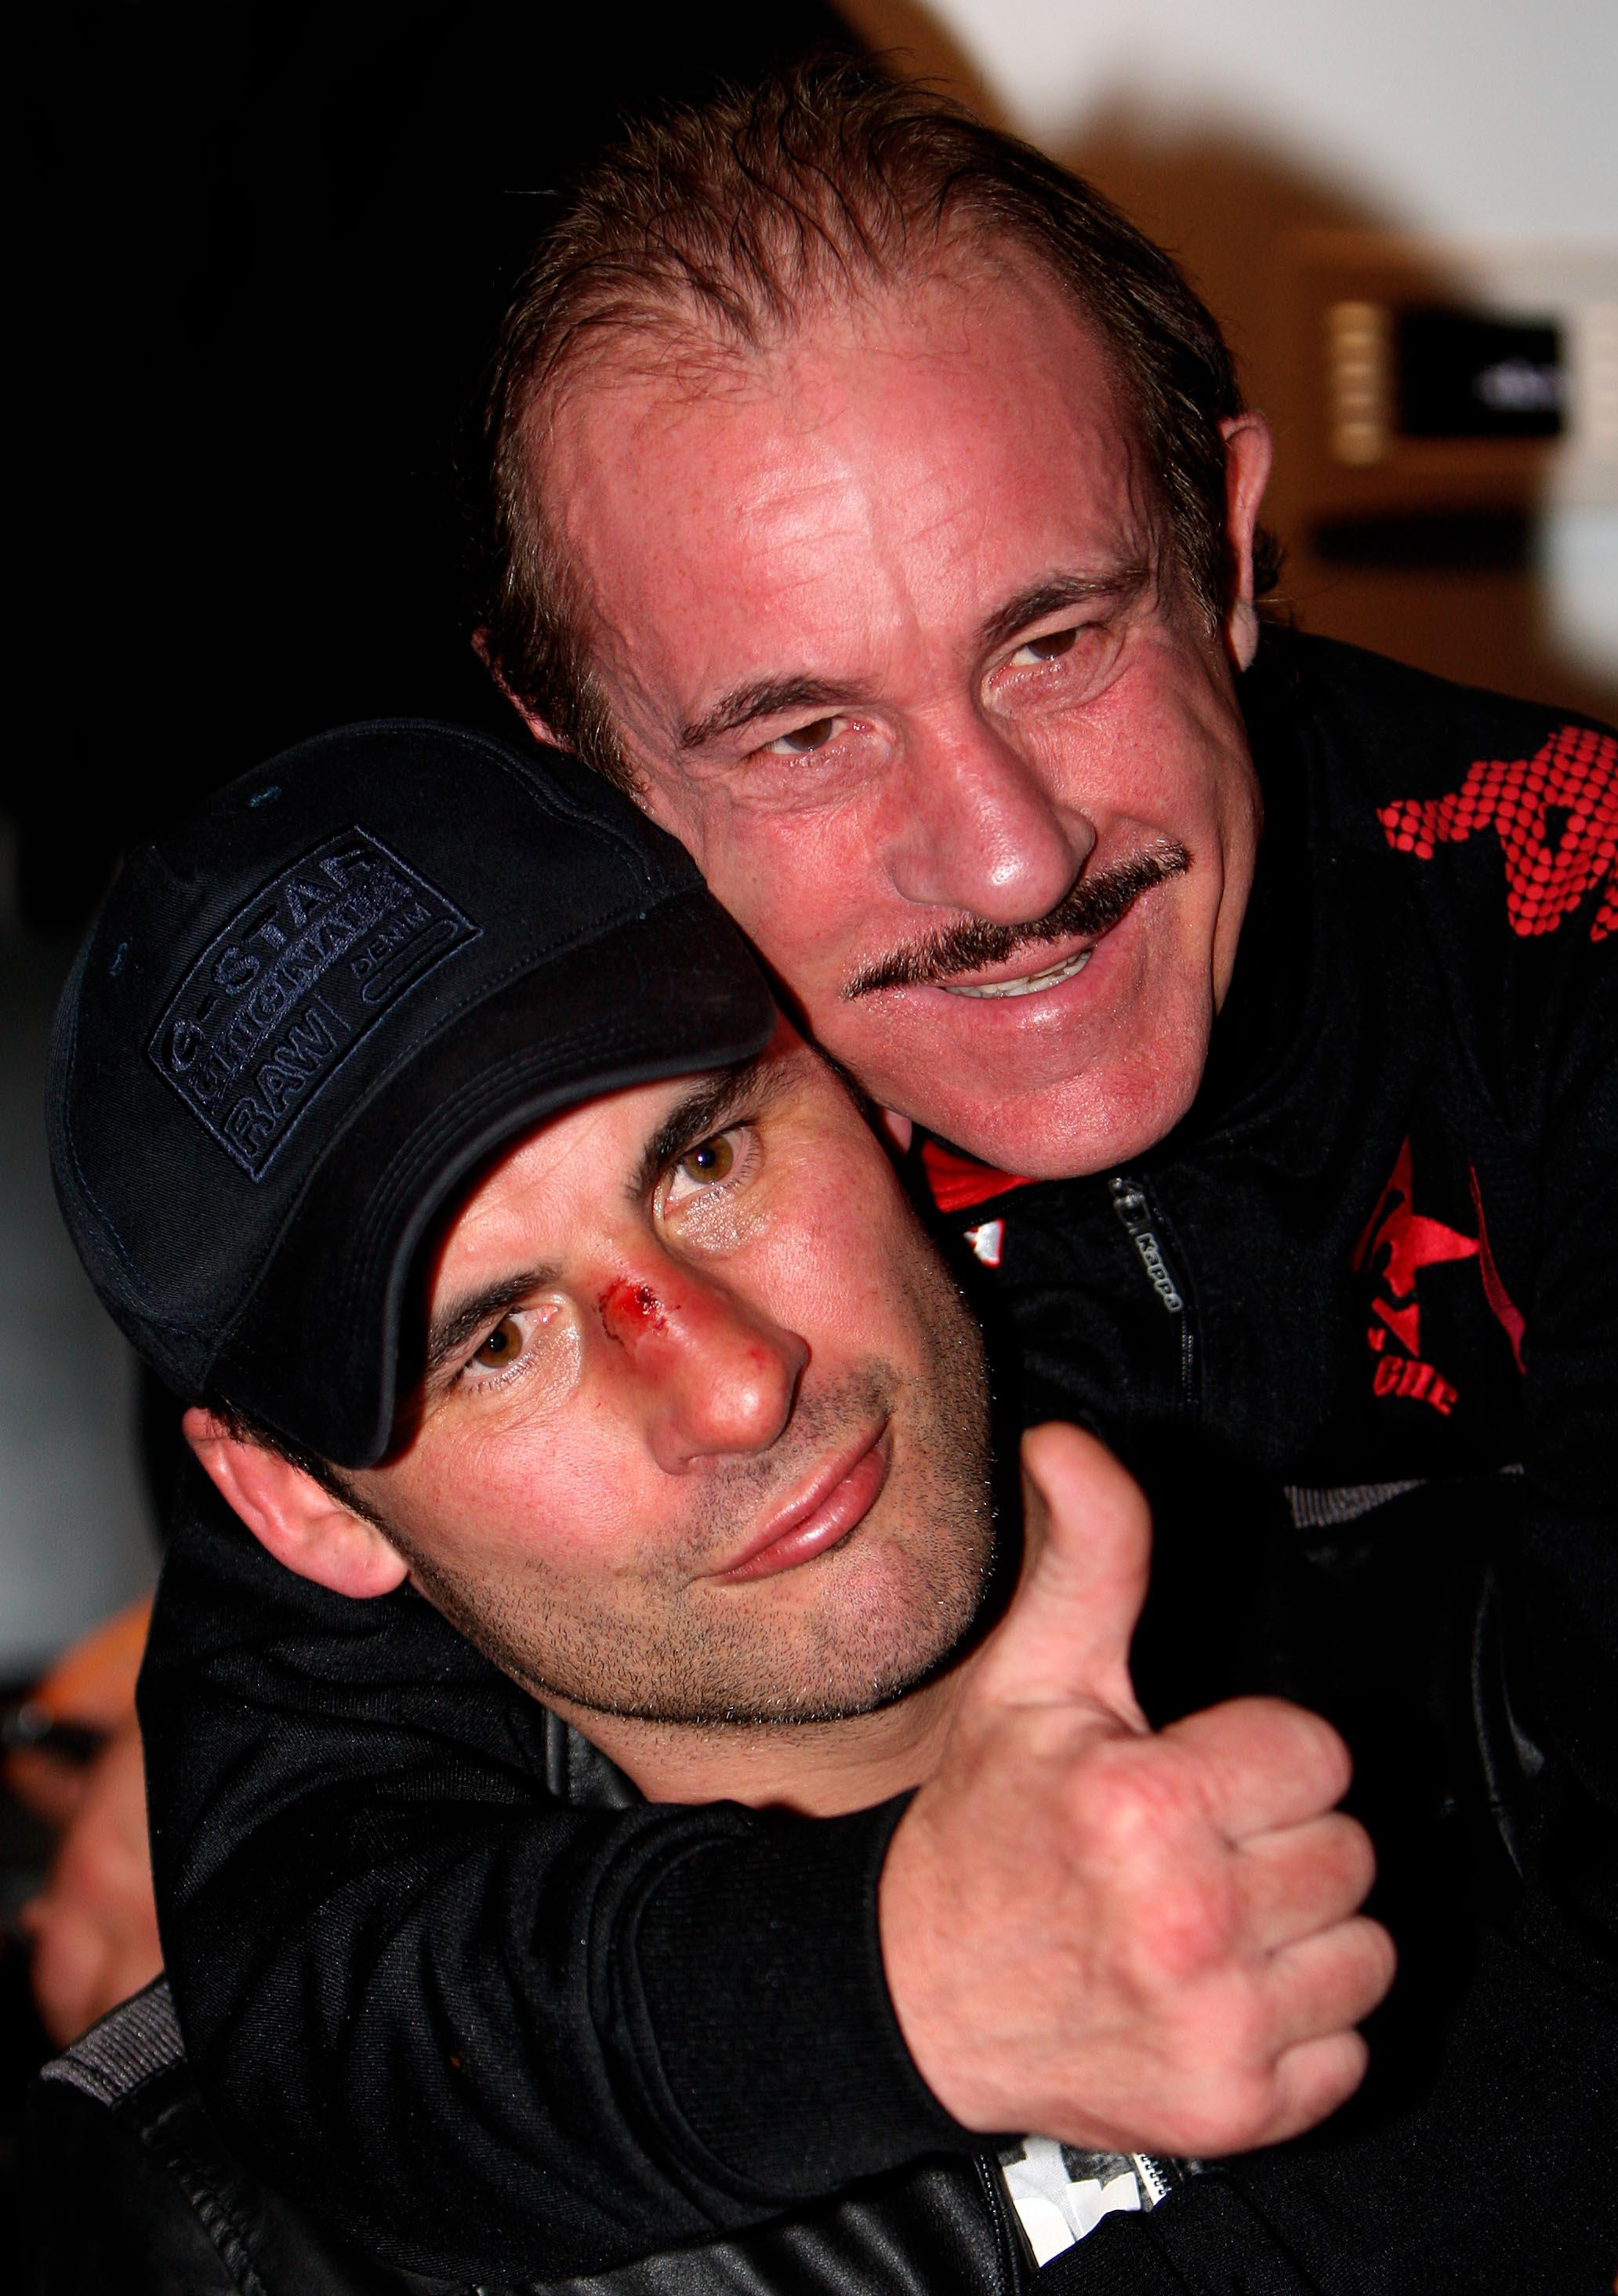 Enzo Calzaghe trained son Joe to an unbeaten career record of 46-0